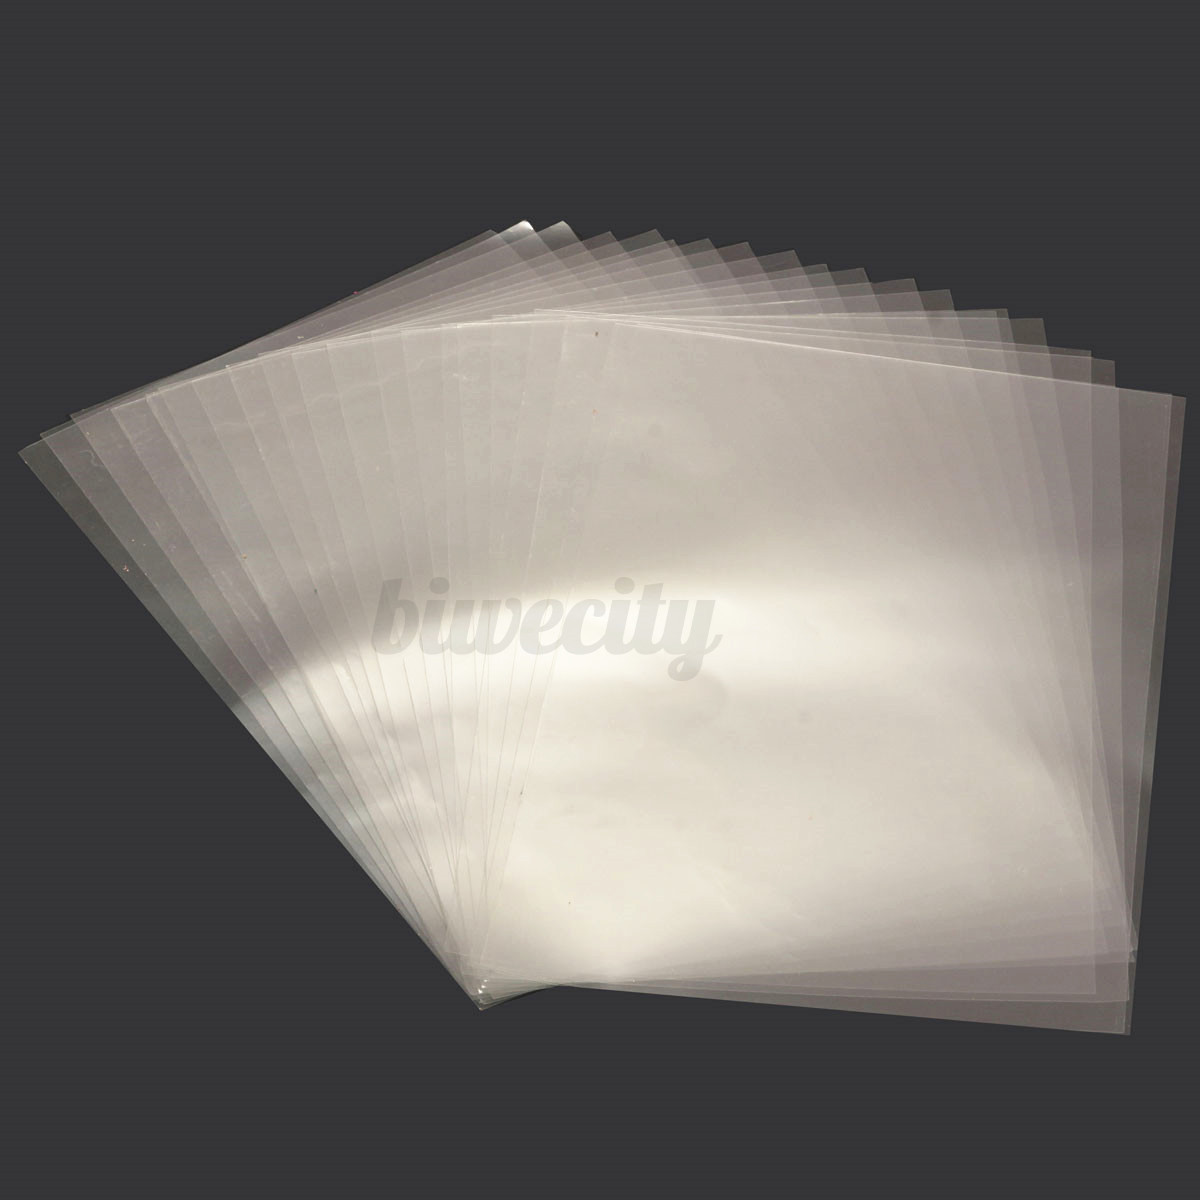 20pcs transparent acrylic a4 double sided adhesive tape for Clear plastic sheets for crafts